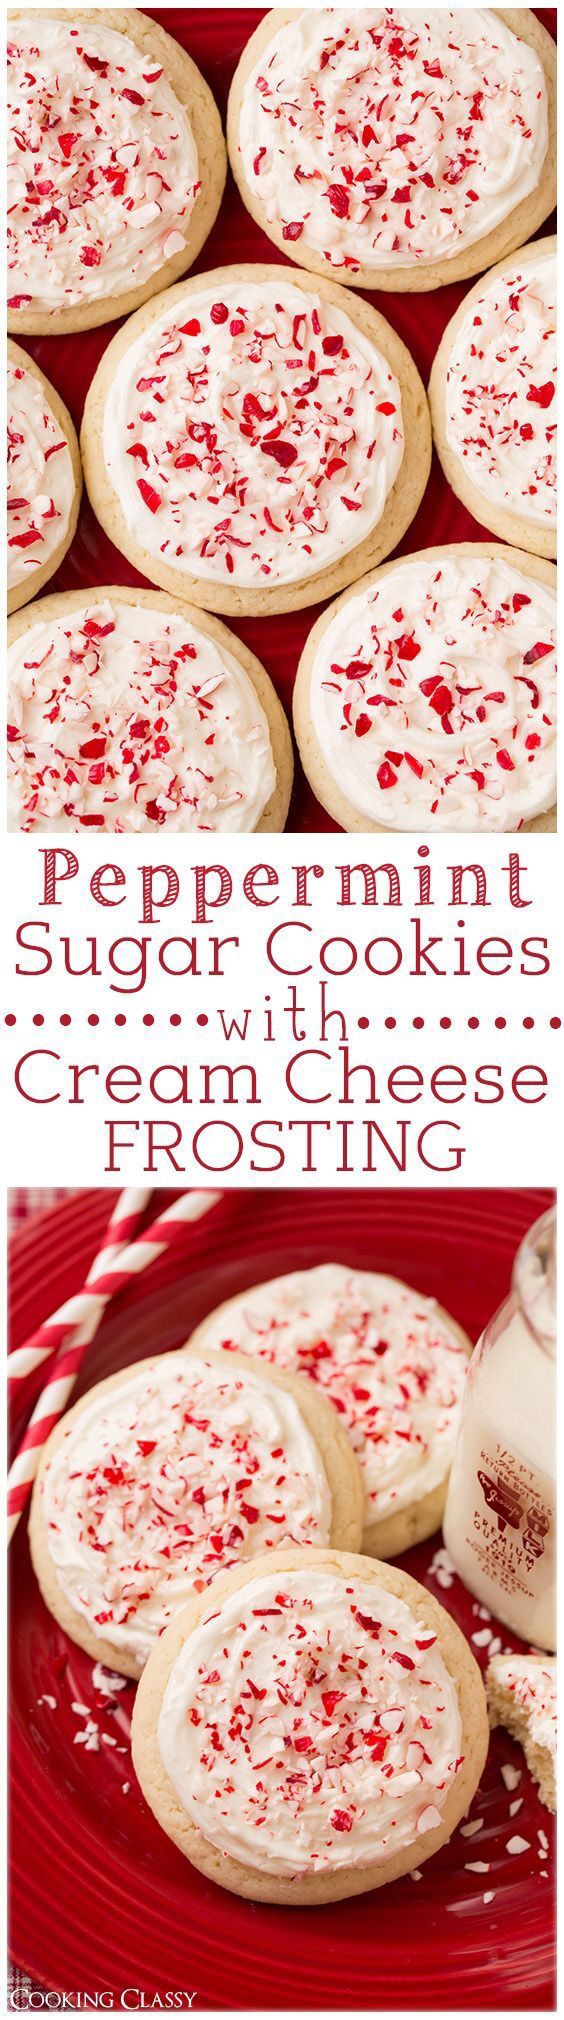 Peppermint sugar cookies with cream cheese frosting